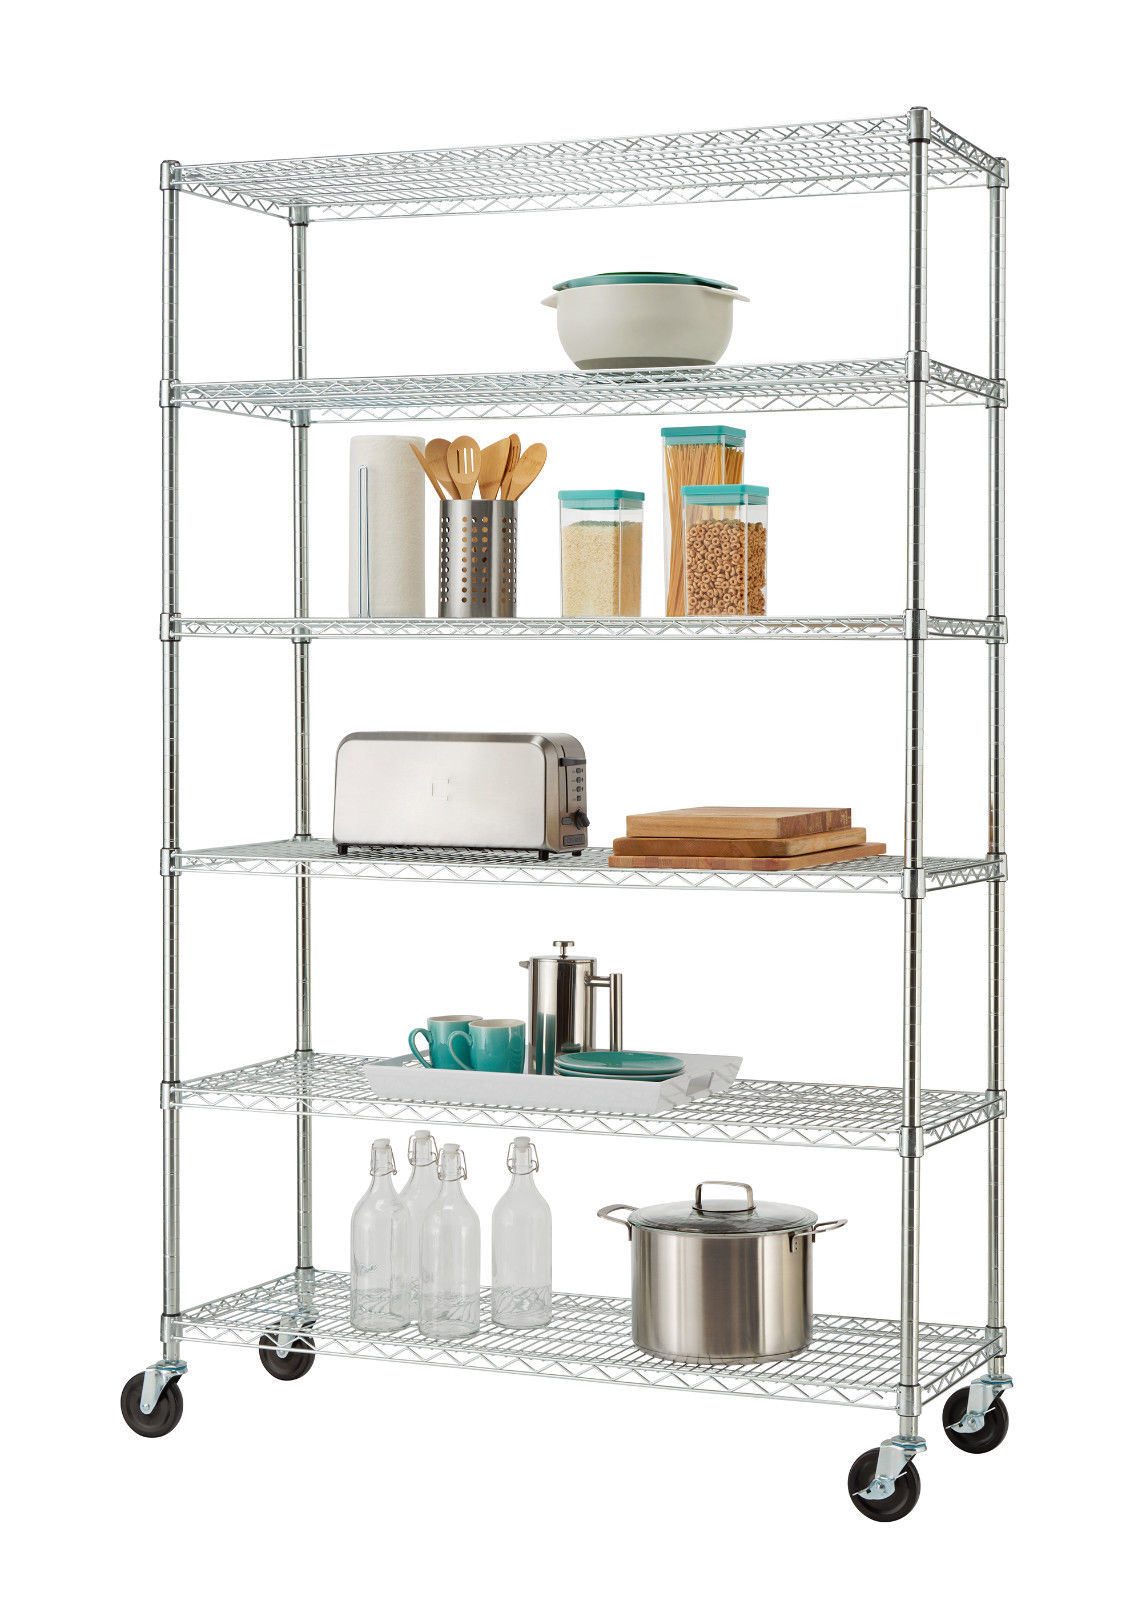 China 6 Tier Commercial Kitchen Shelving Chrome Steel Wire Rack Garage Storage Nsf Bsci Certificate China Rack Storage Rack